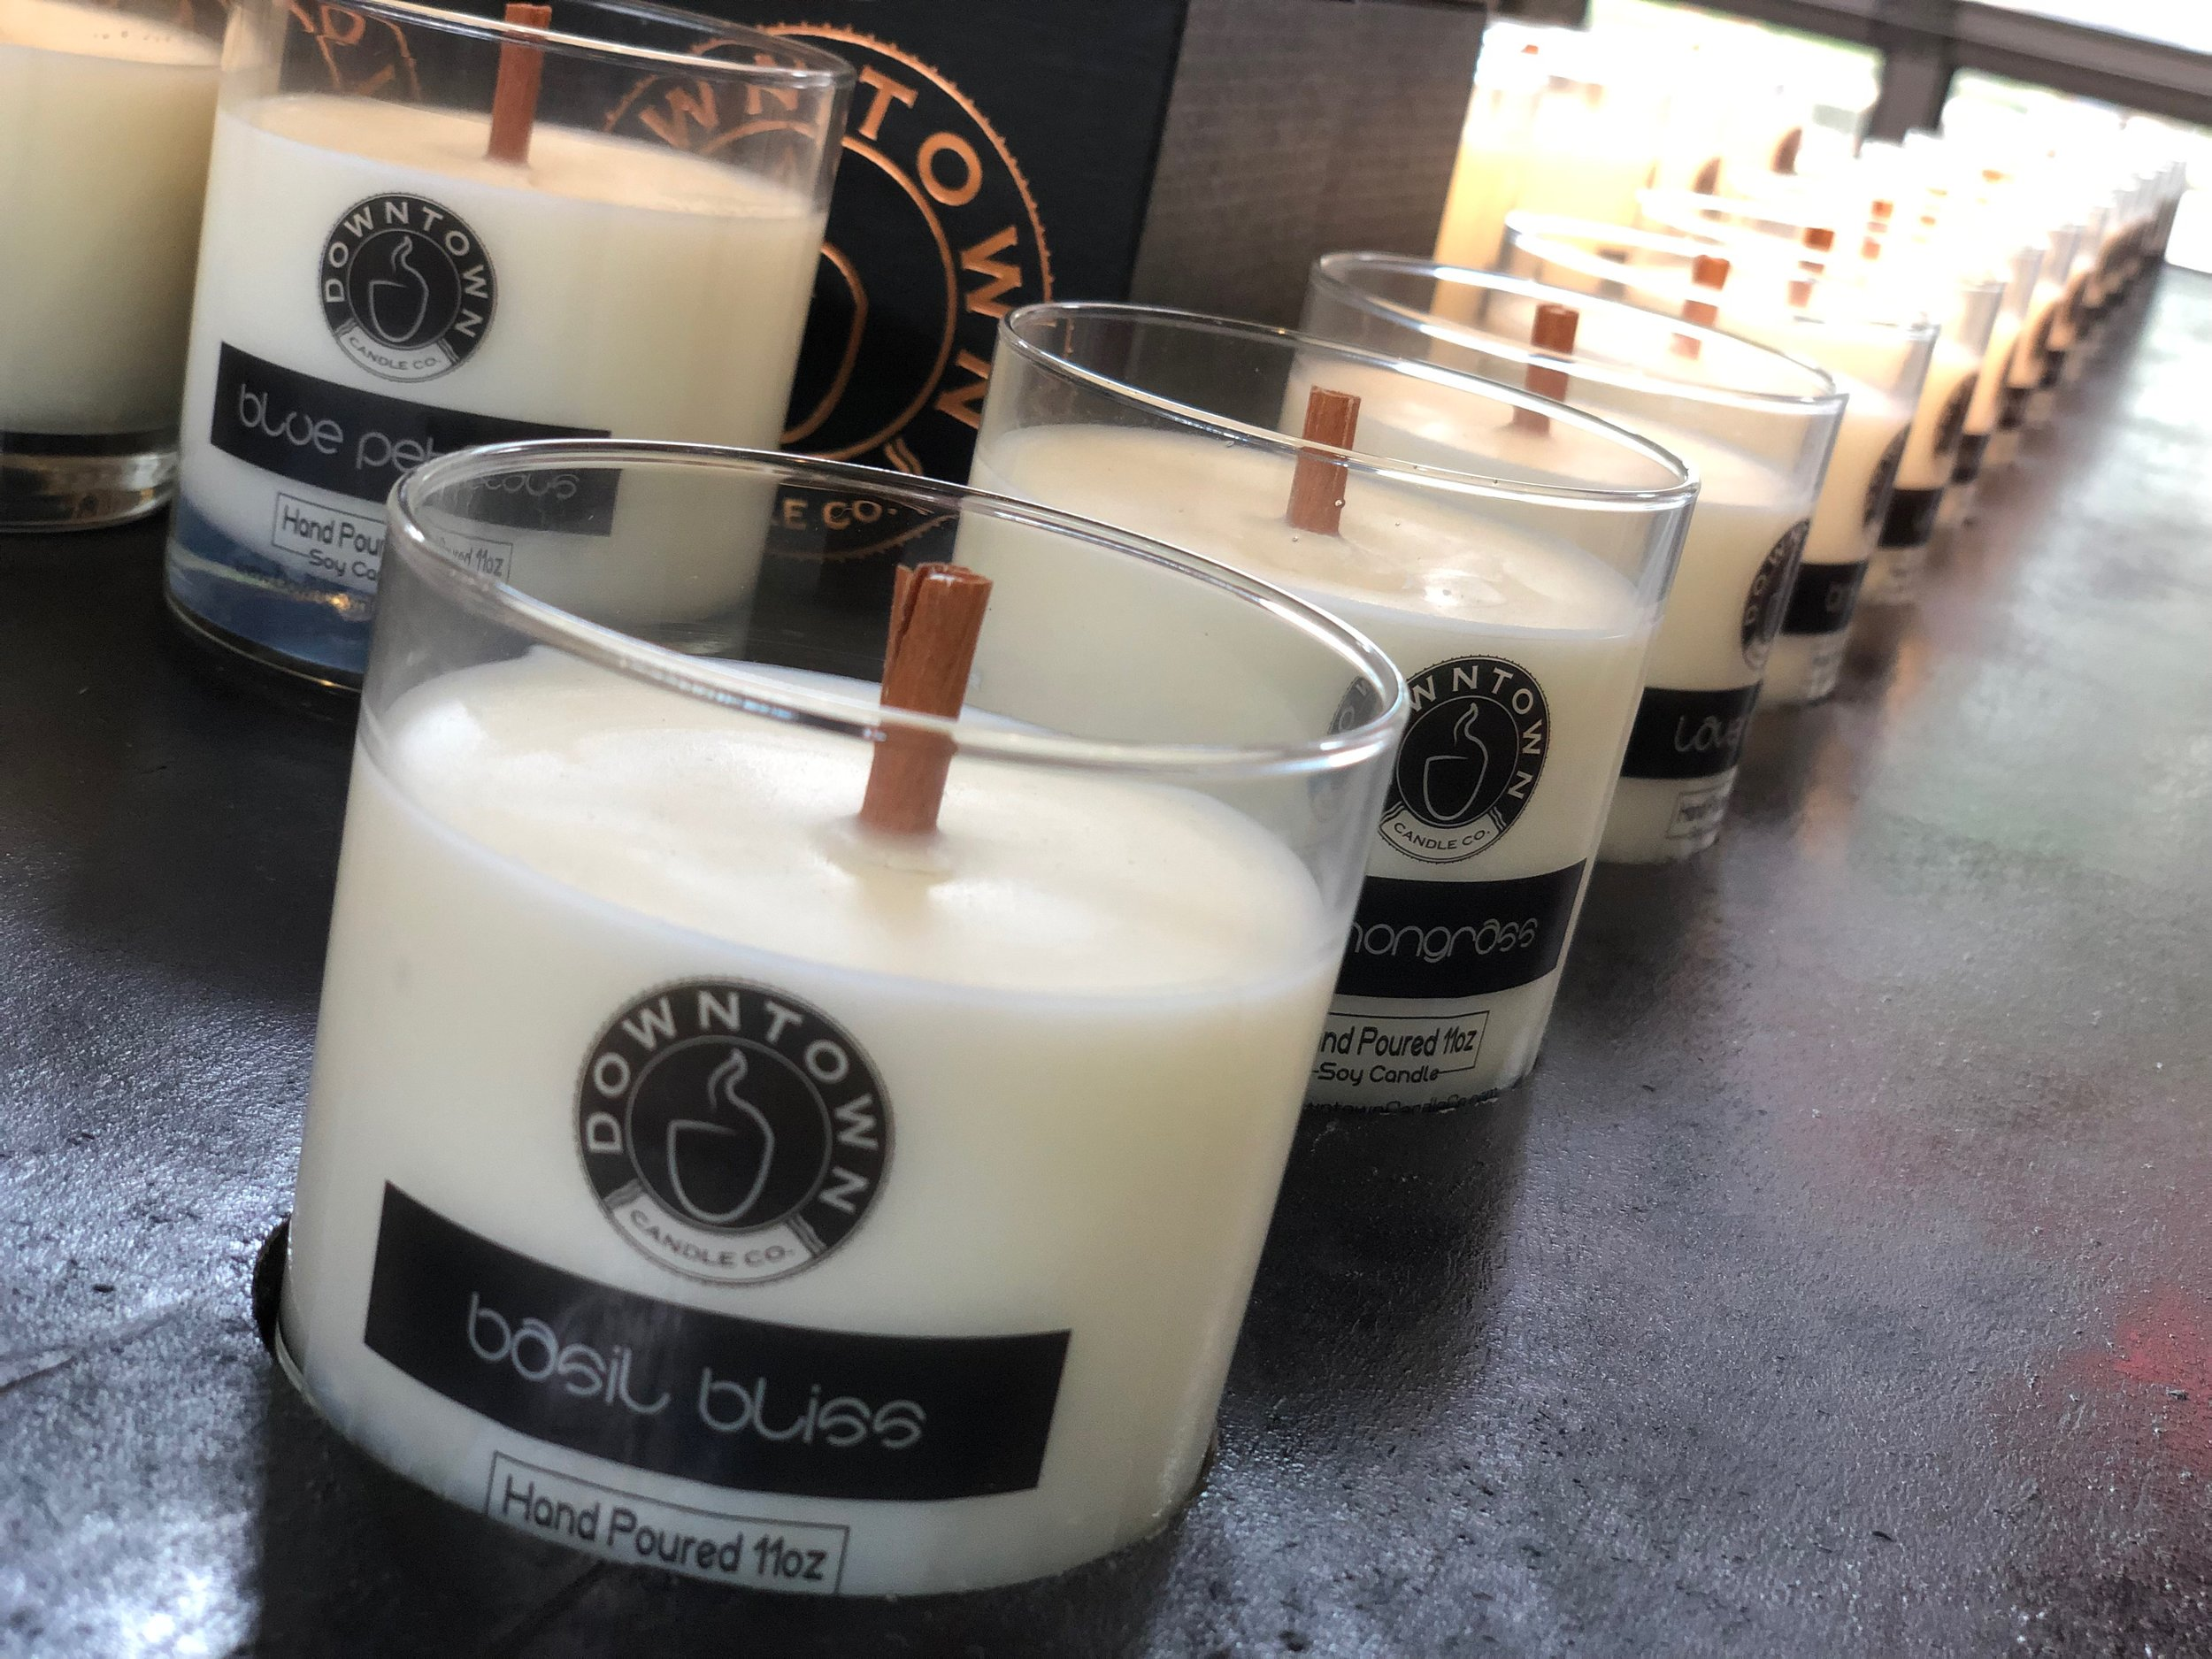 Pick your flavor. Downtown Candle is located at the Nashville Farmers' Market on the eastern side of the Market House, between Fountain of Juice and Bubble Love.